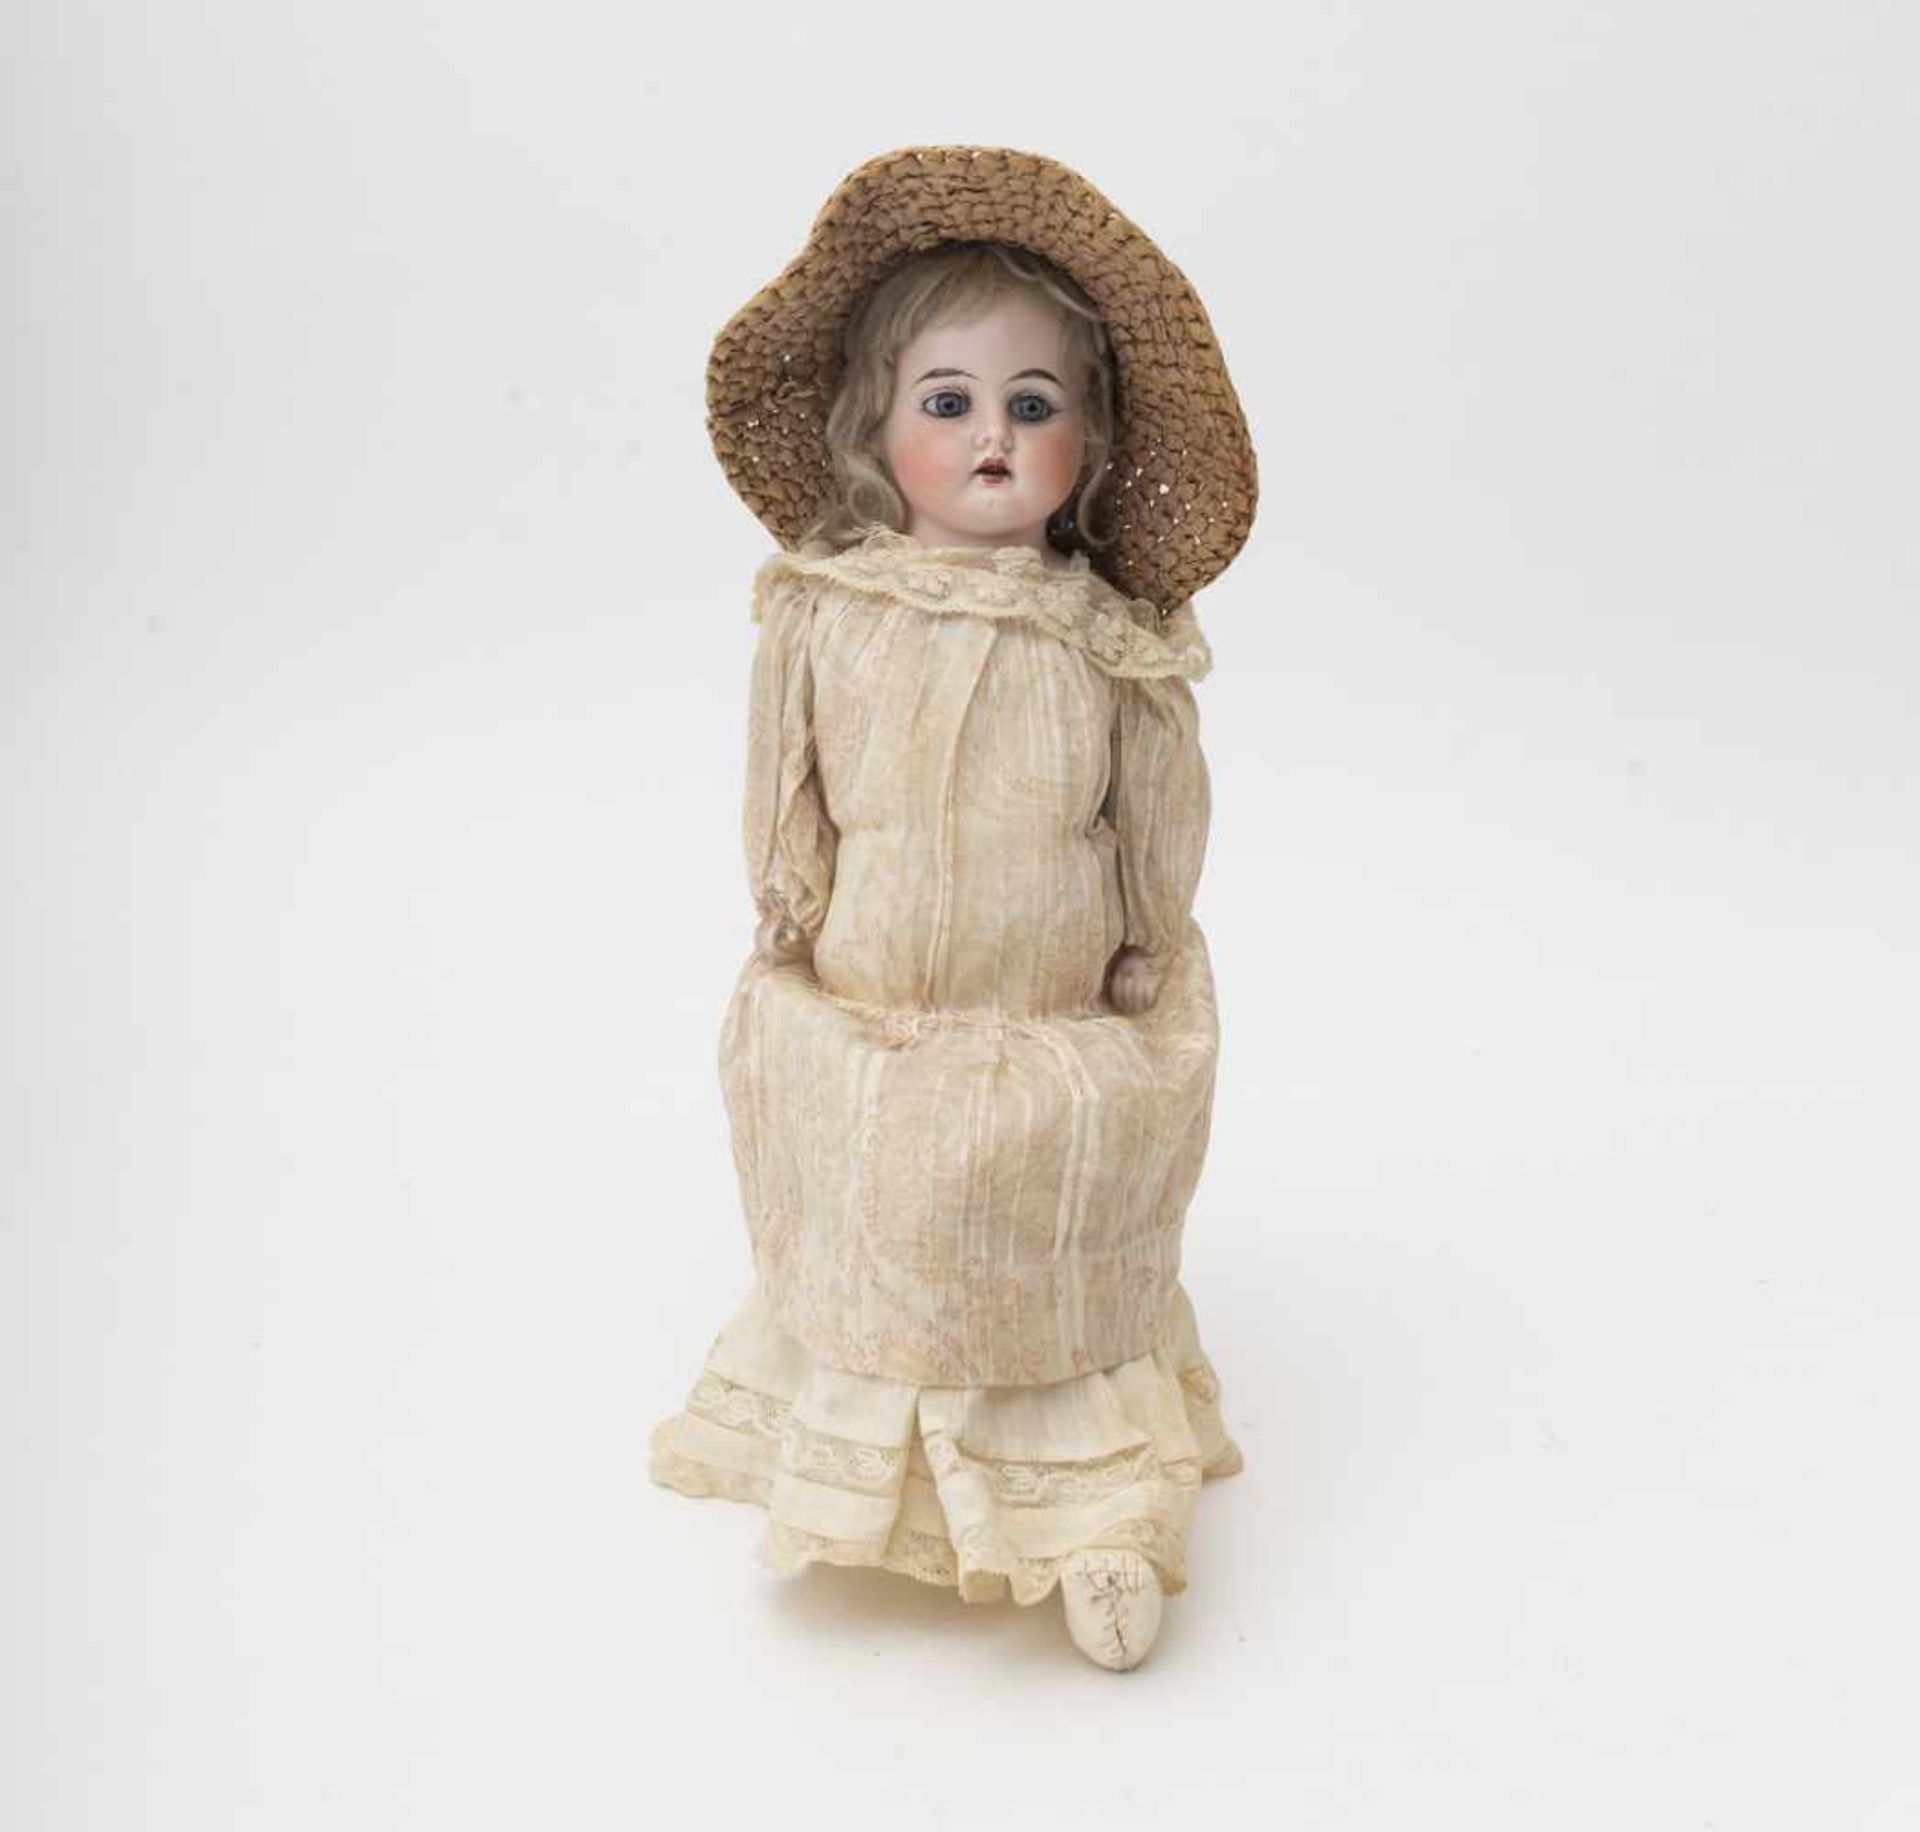 German doll Biscuit head and torso, open mouth, branded with a horseshoe, fixed blue eyes,